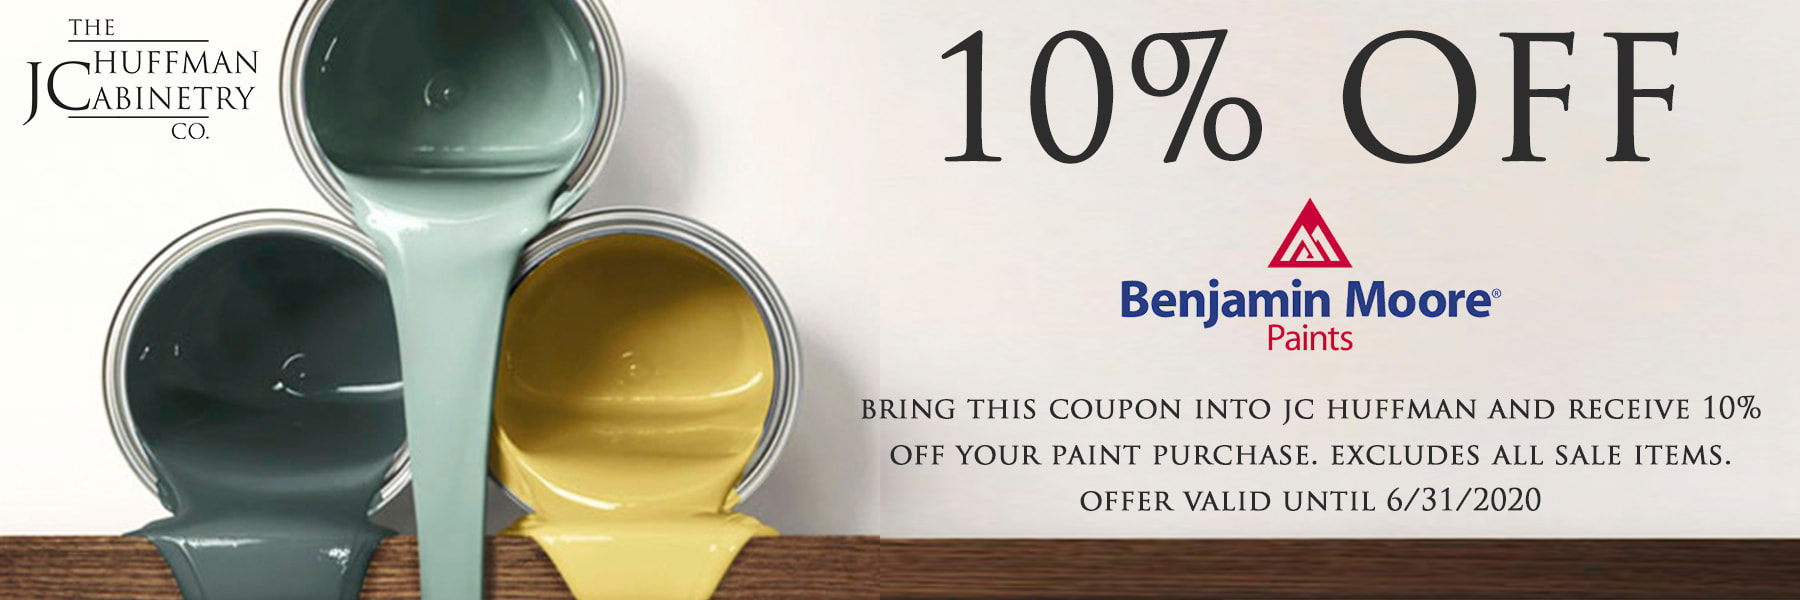 jc huffman cabinetry featuring 10 off benjamin moore paints on benjamin moore coupon id=78541